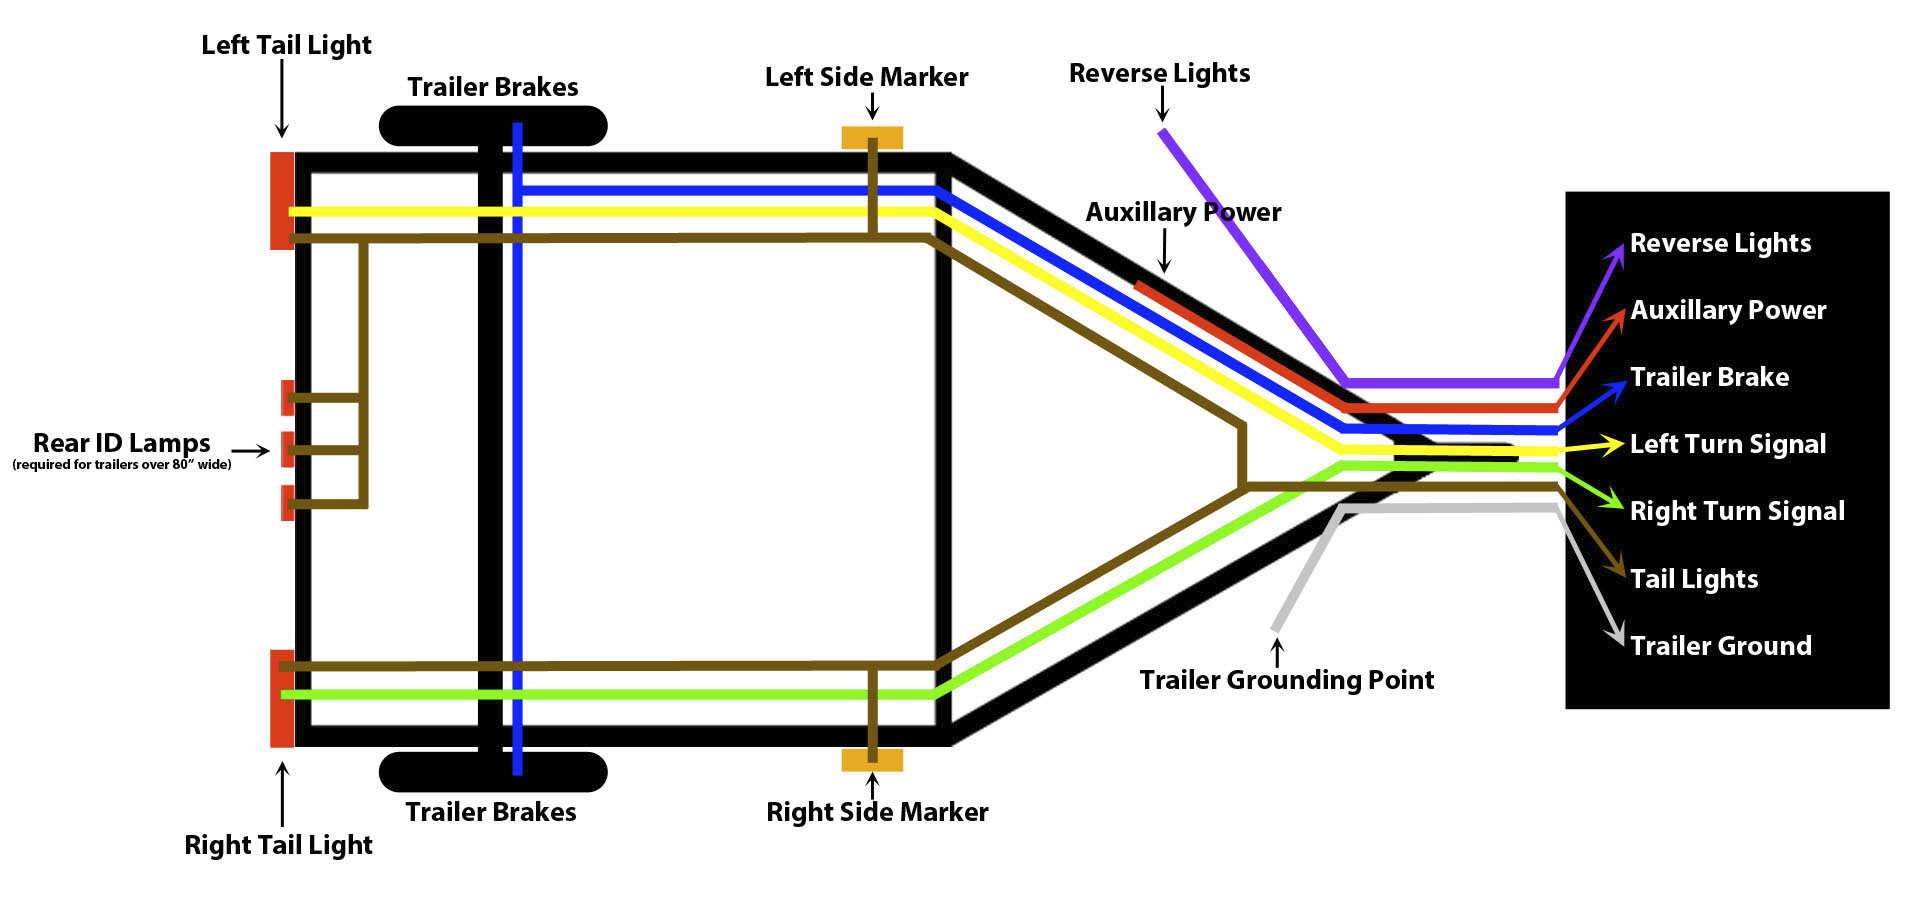 How To Wire Trailer Lights - Trailer Wiring Guide & Videos - Chevrolet 7-Pin Trailer Wiring Diagram